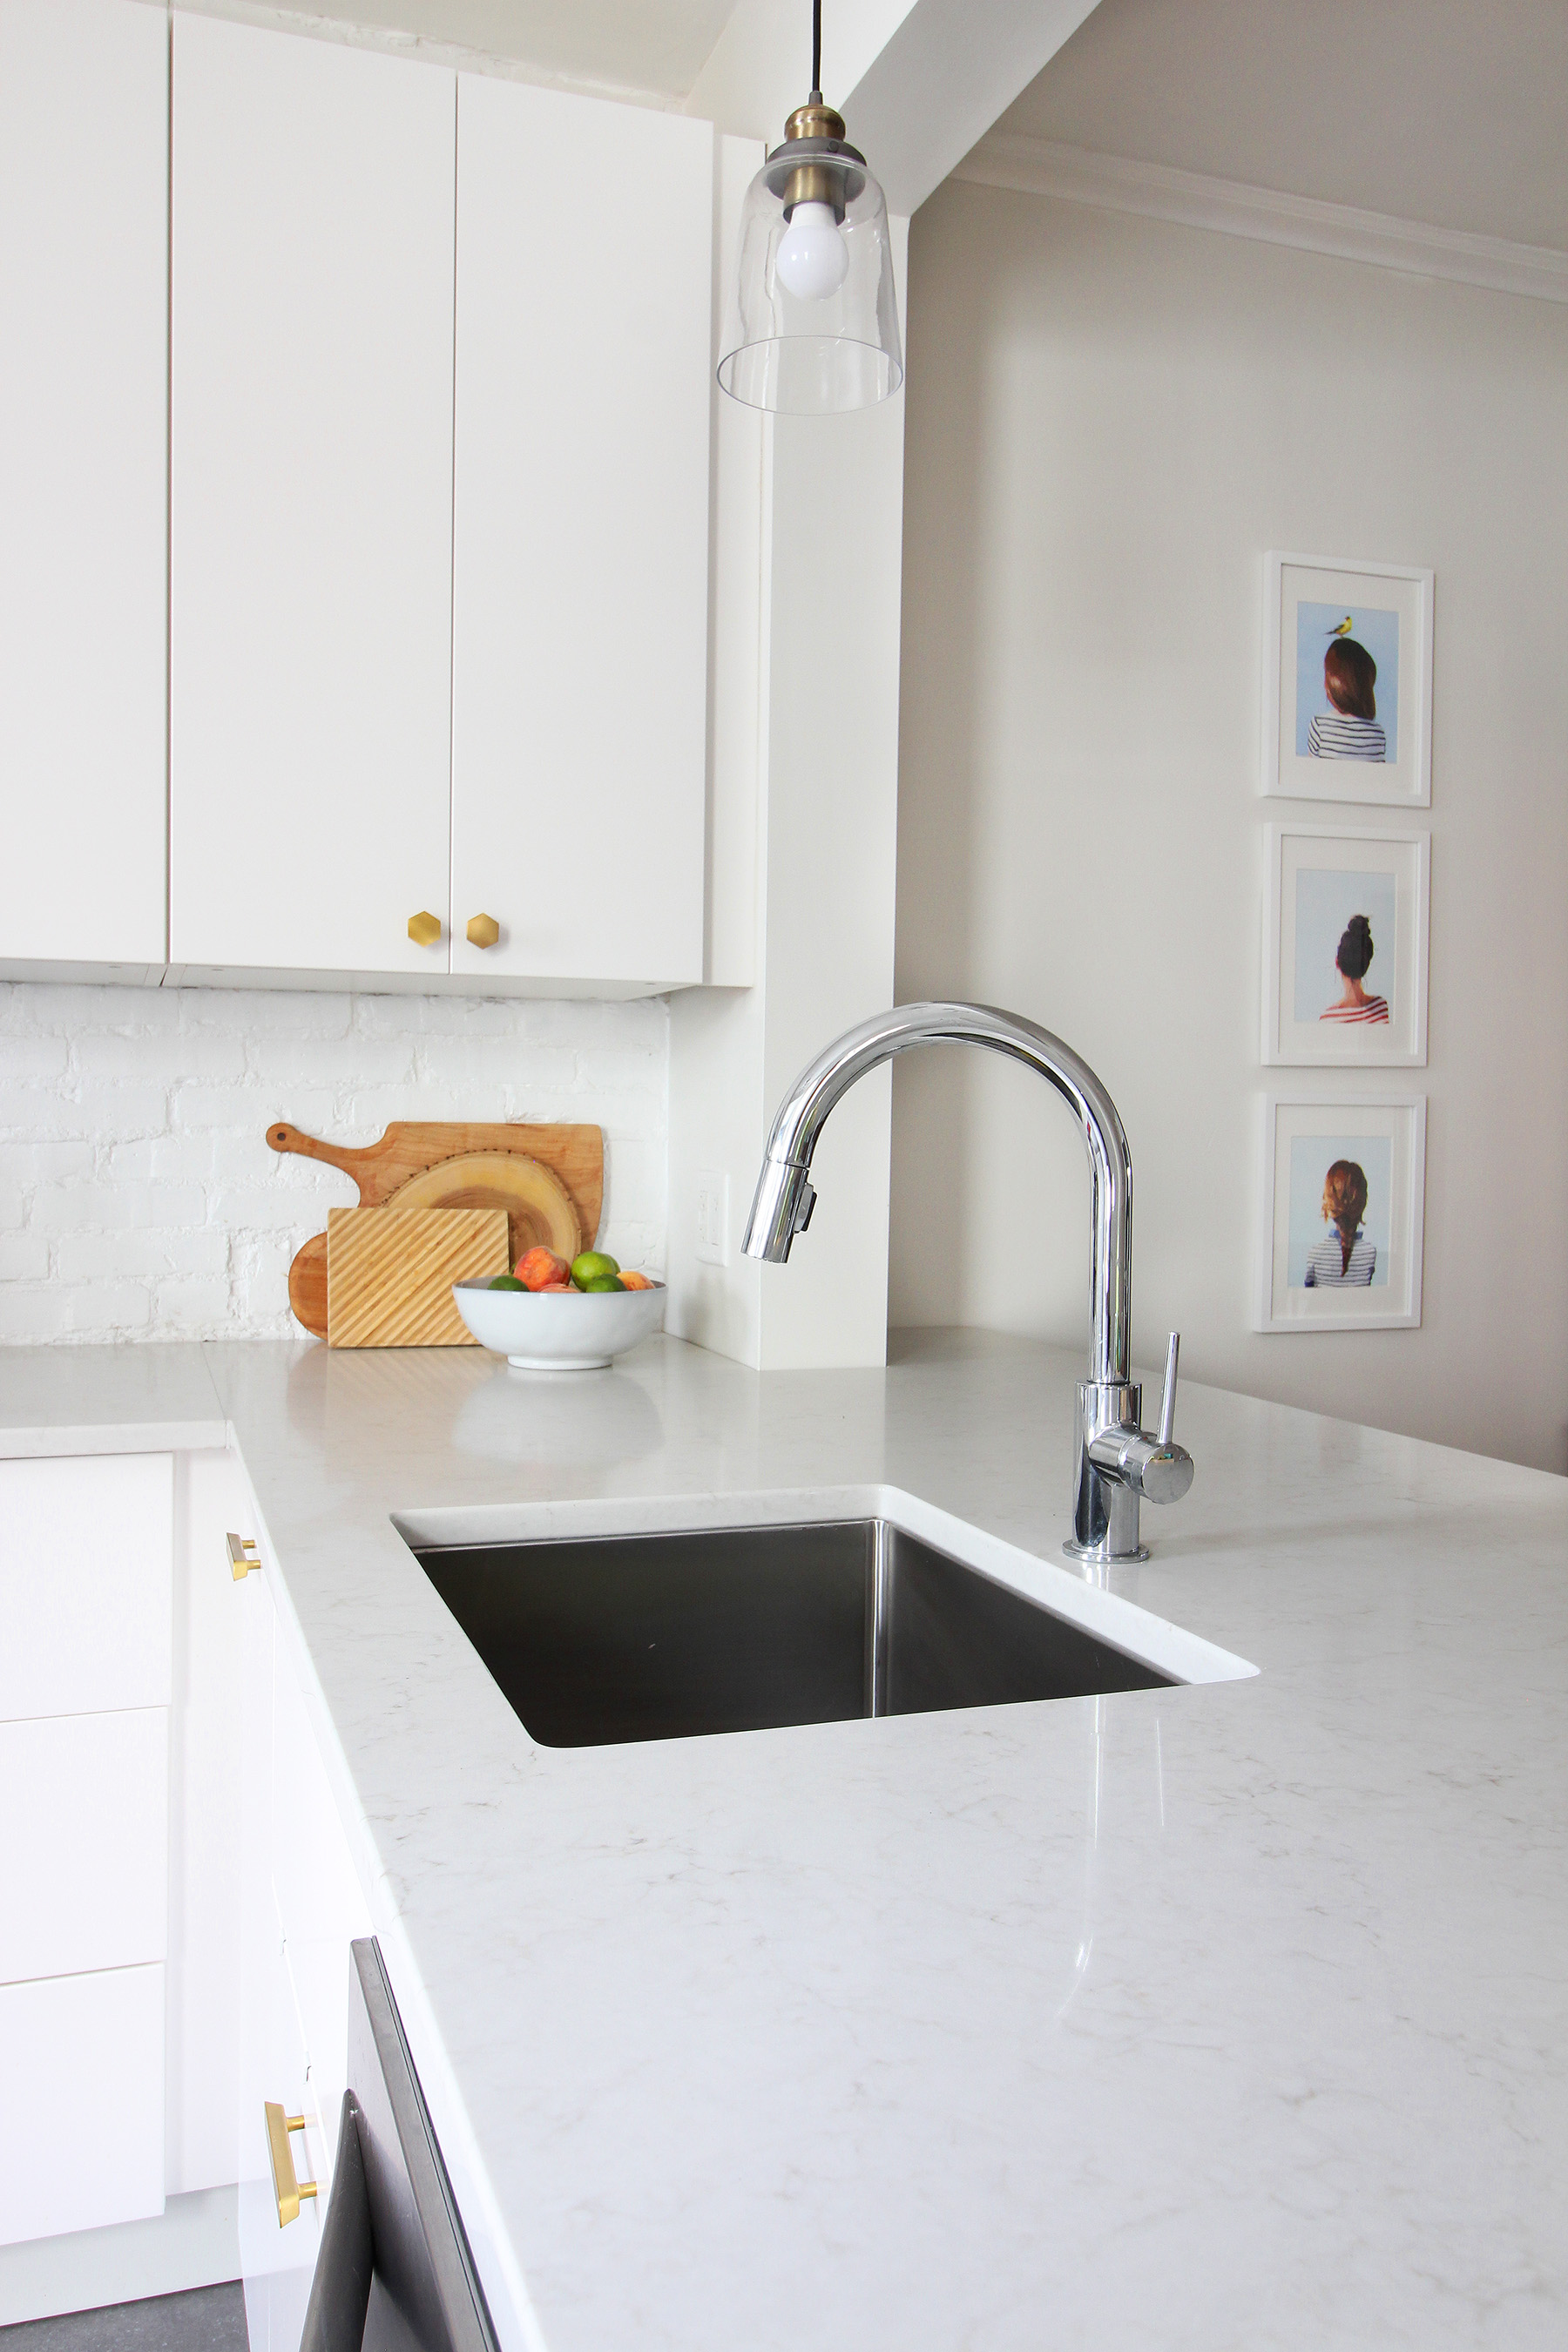 Read my review of our modern white kitchen renovation using IKEA cabinets, Caesarstone countertops, and gray tile floors two years after we renovated.